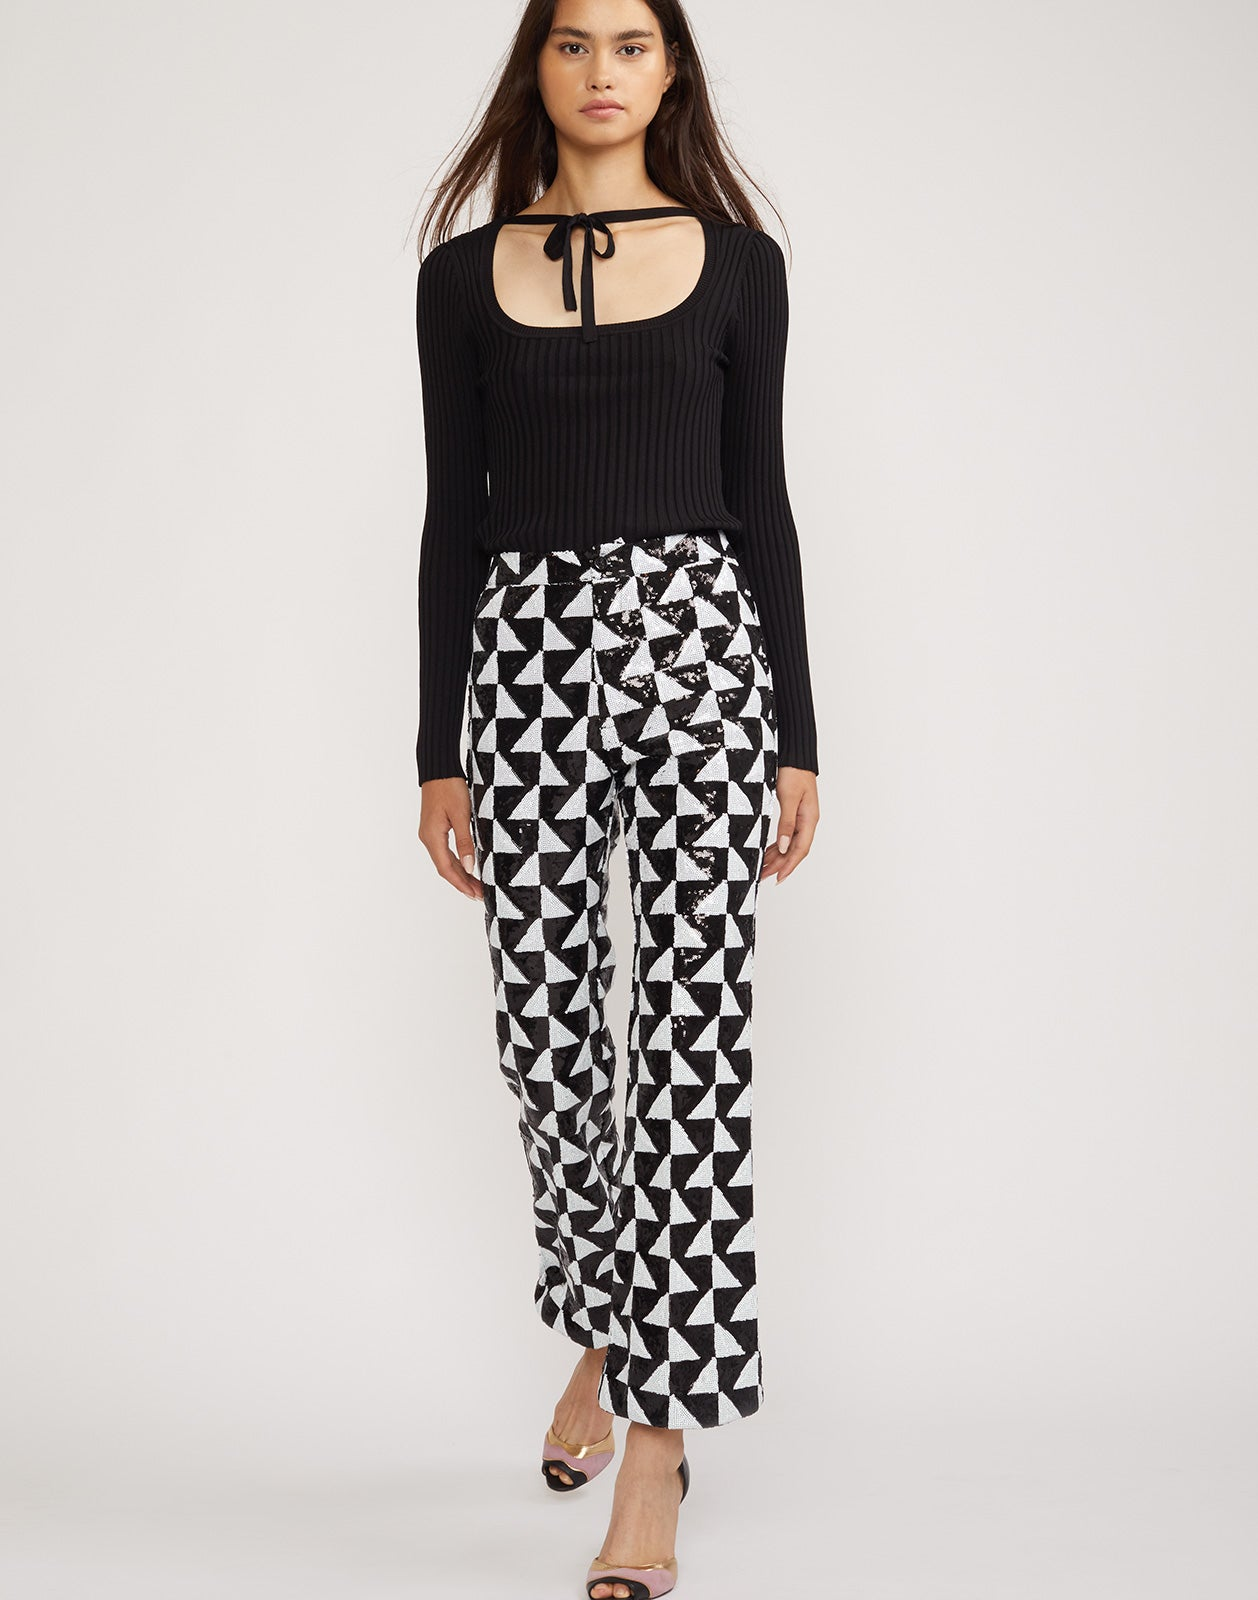 Full front view of the Illusion Geometric Sequin black and white pants.